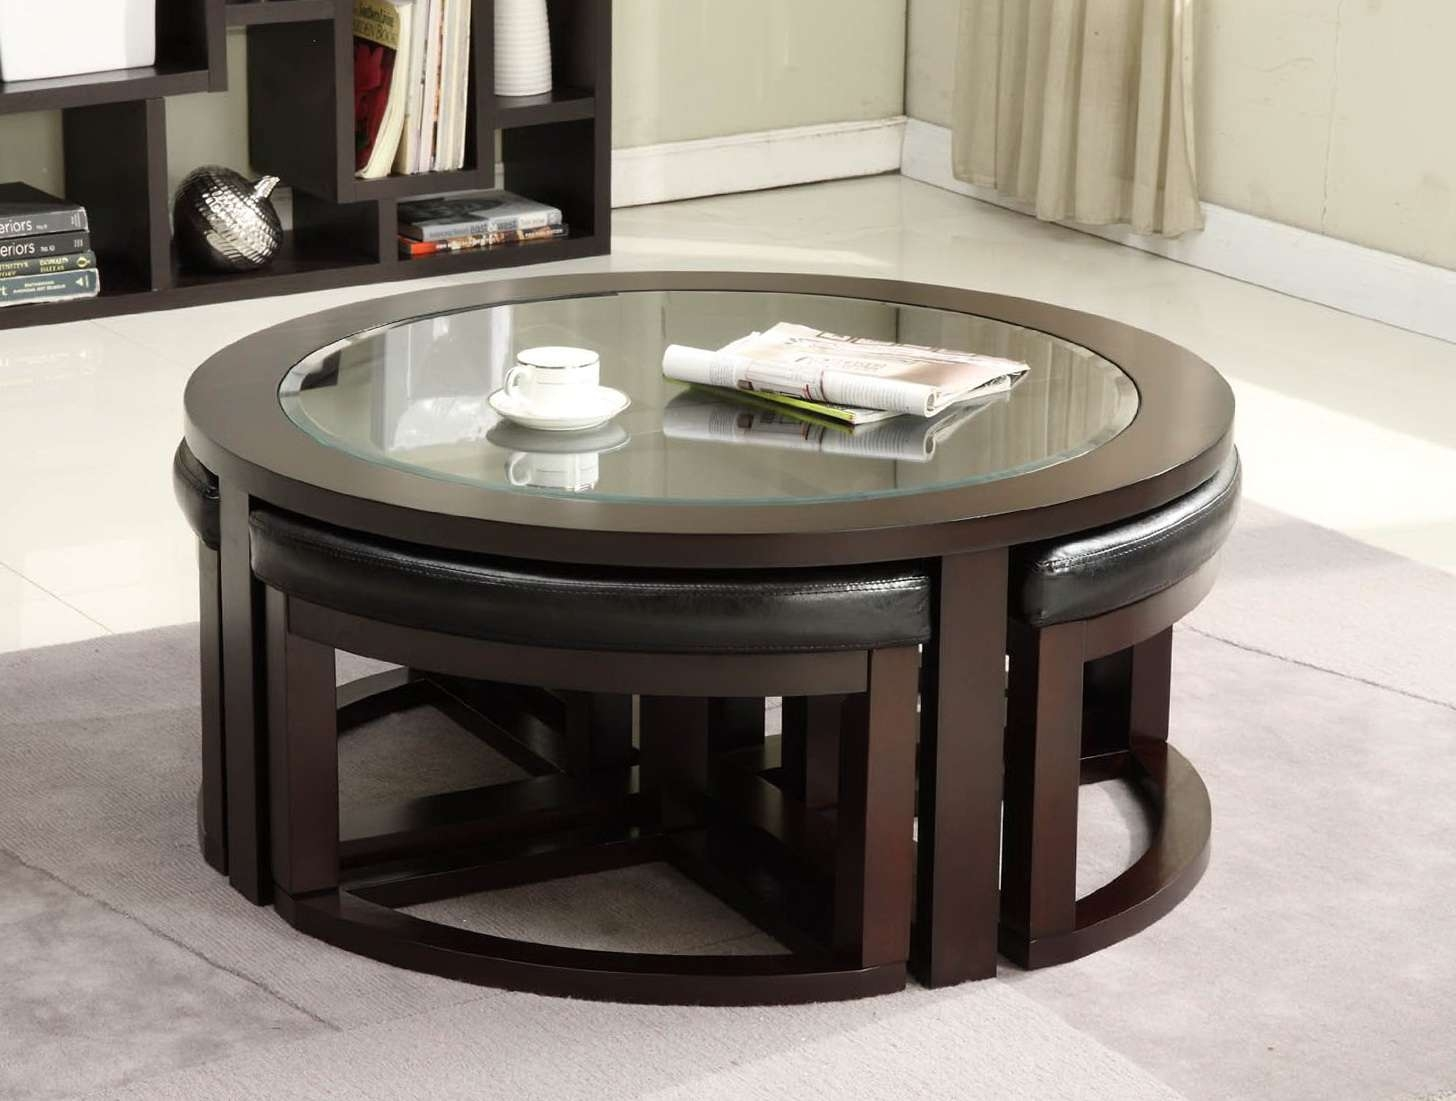 Preferred Round Coffee Table Storages Throughout Coffee Tables : Splendid Round Coffee Table Ottomans Underneath (View 16 of 20)